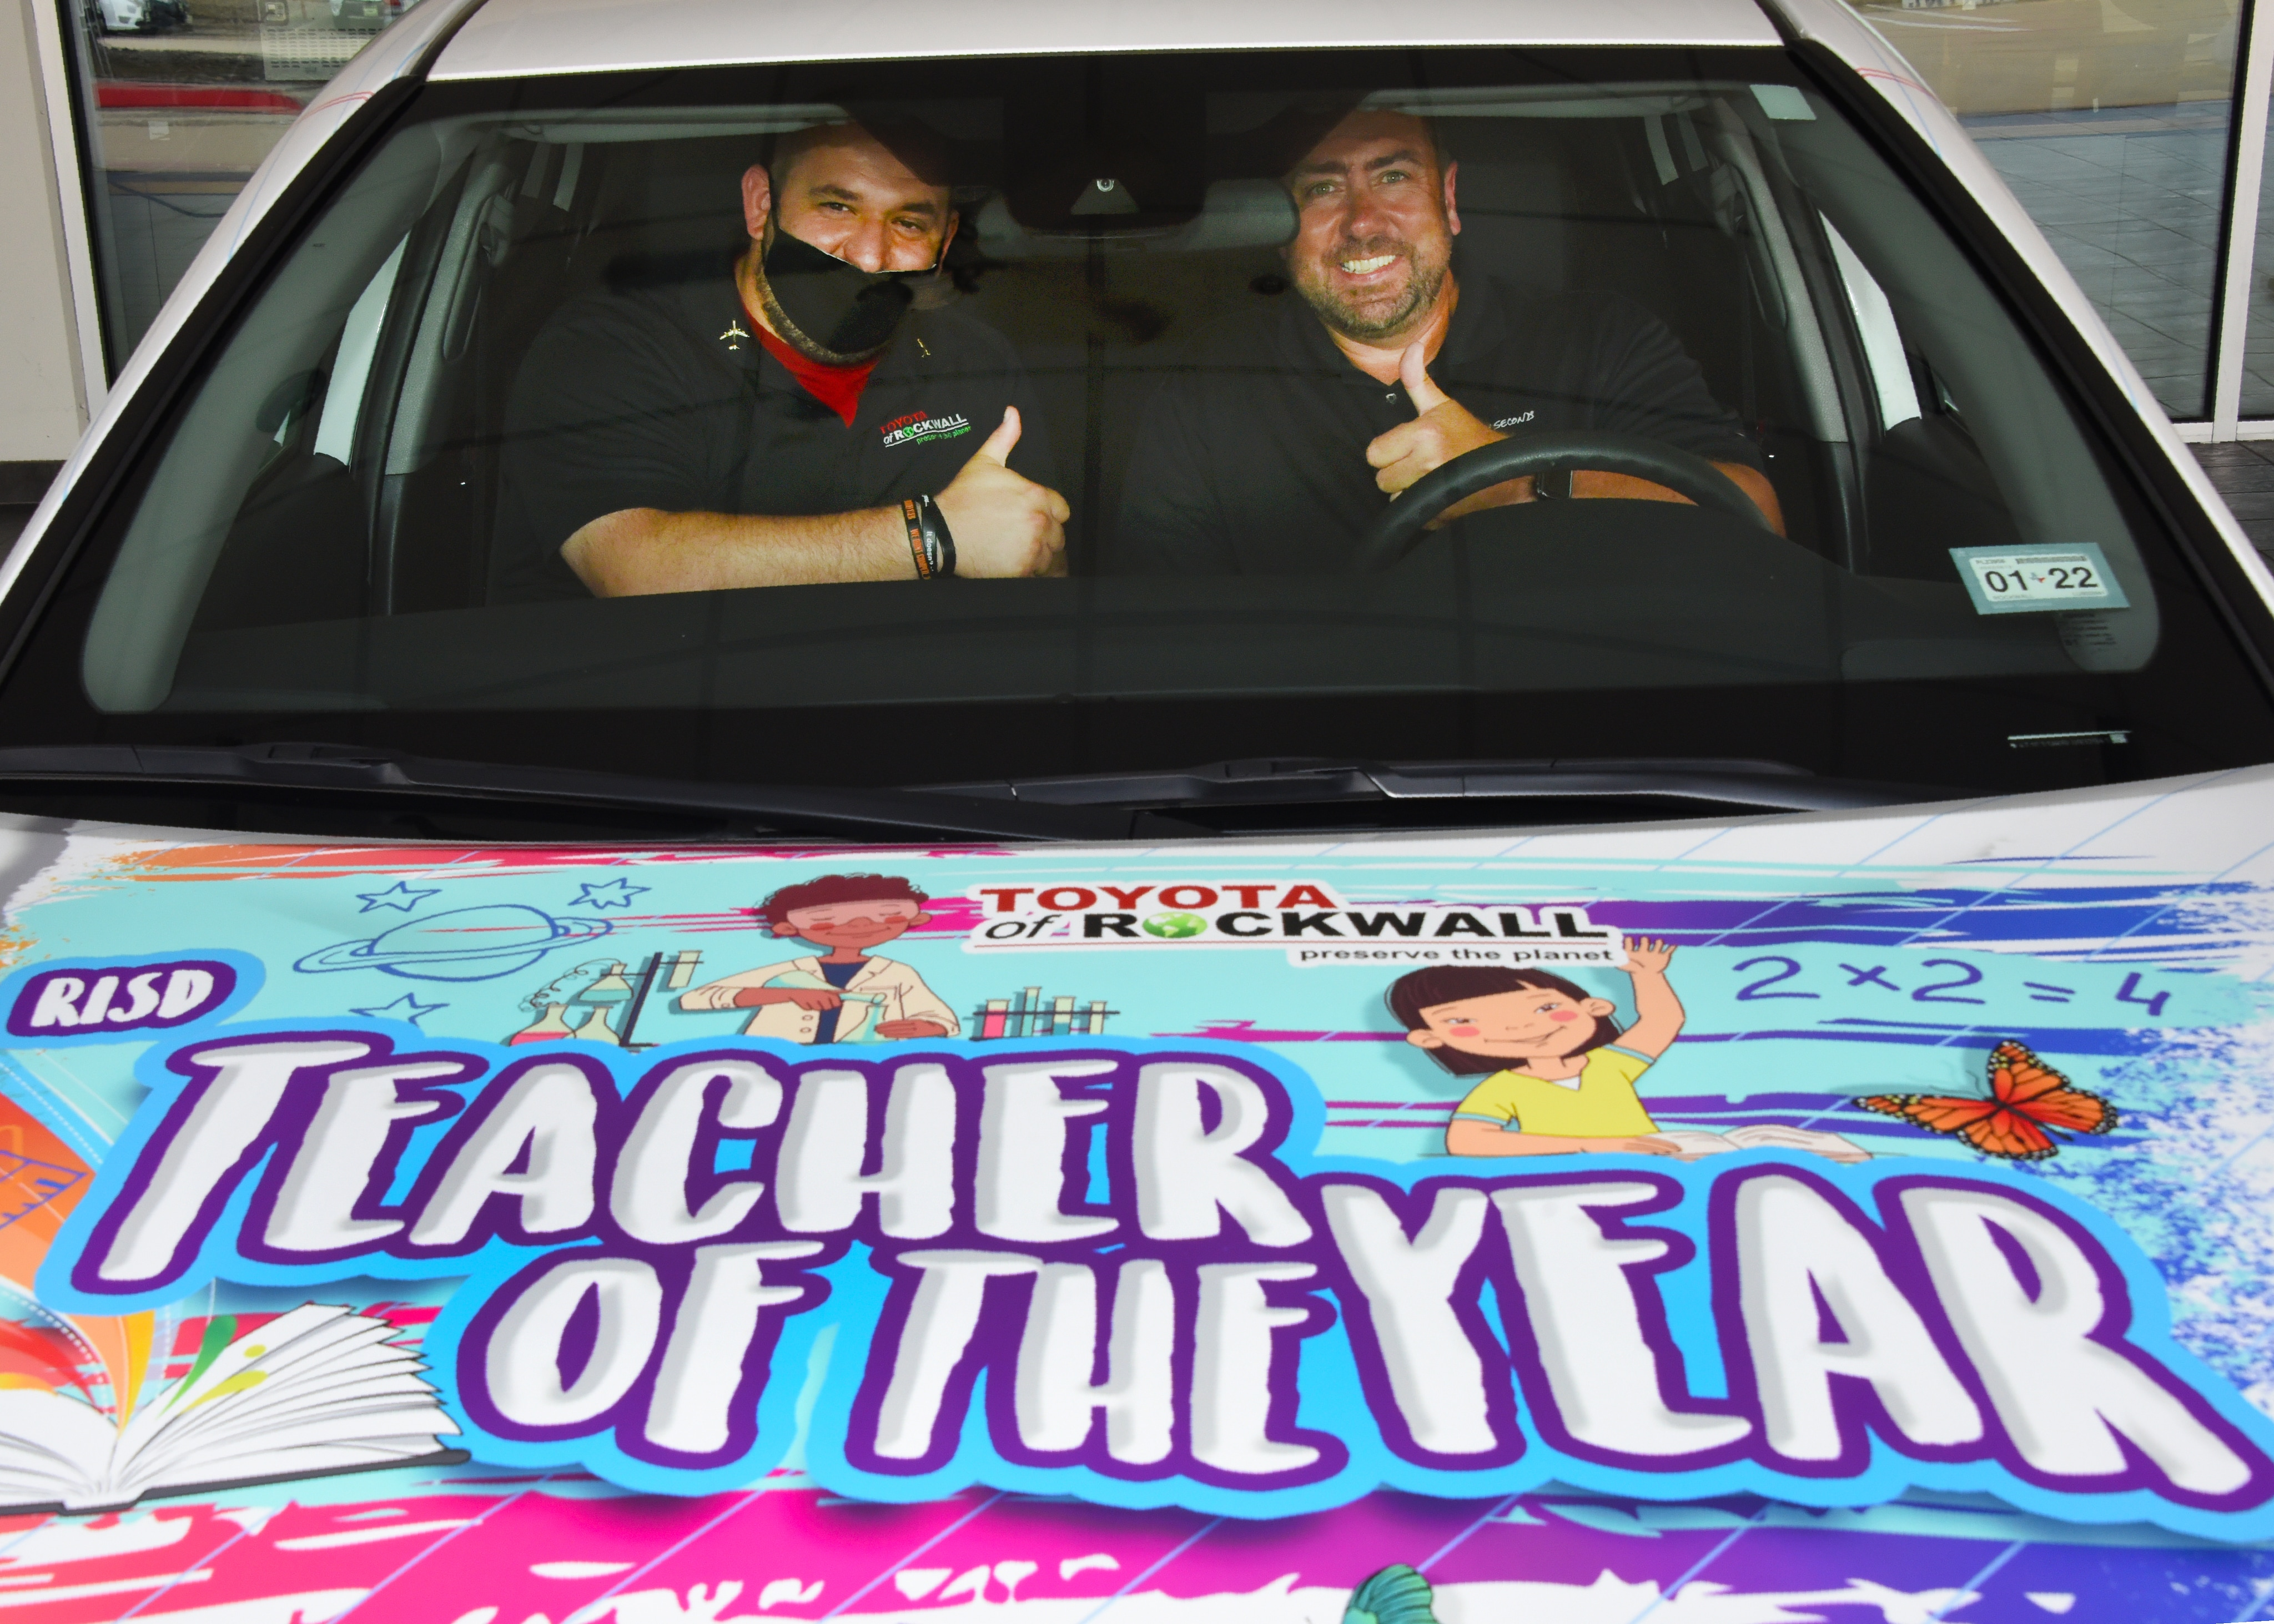 Teacher of the Year at Toyota of Rockwall